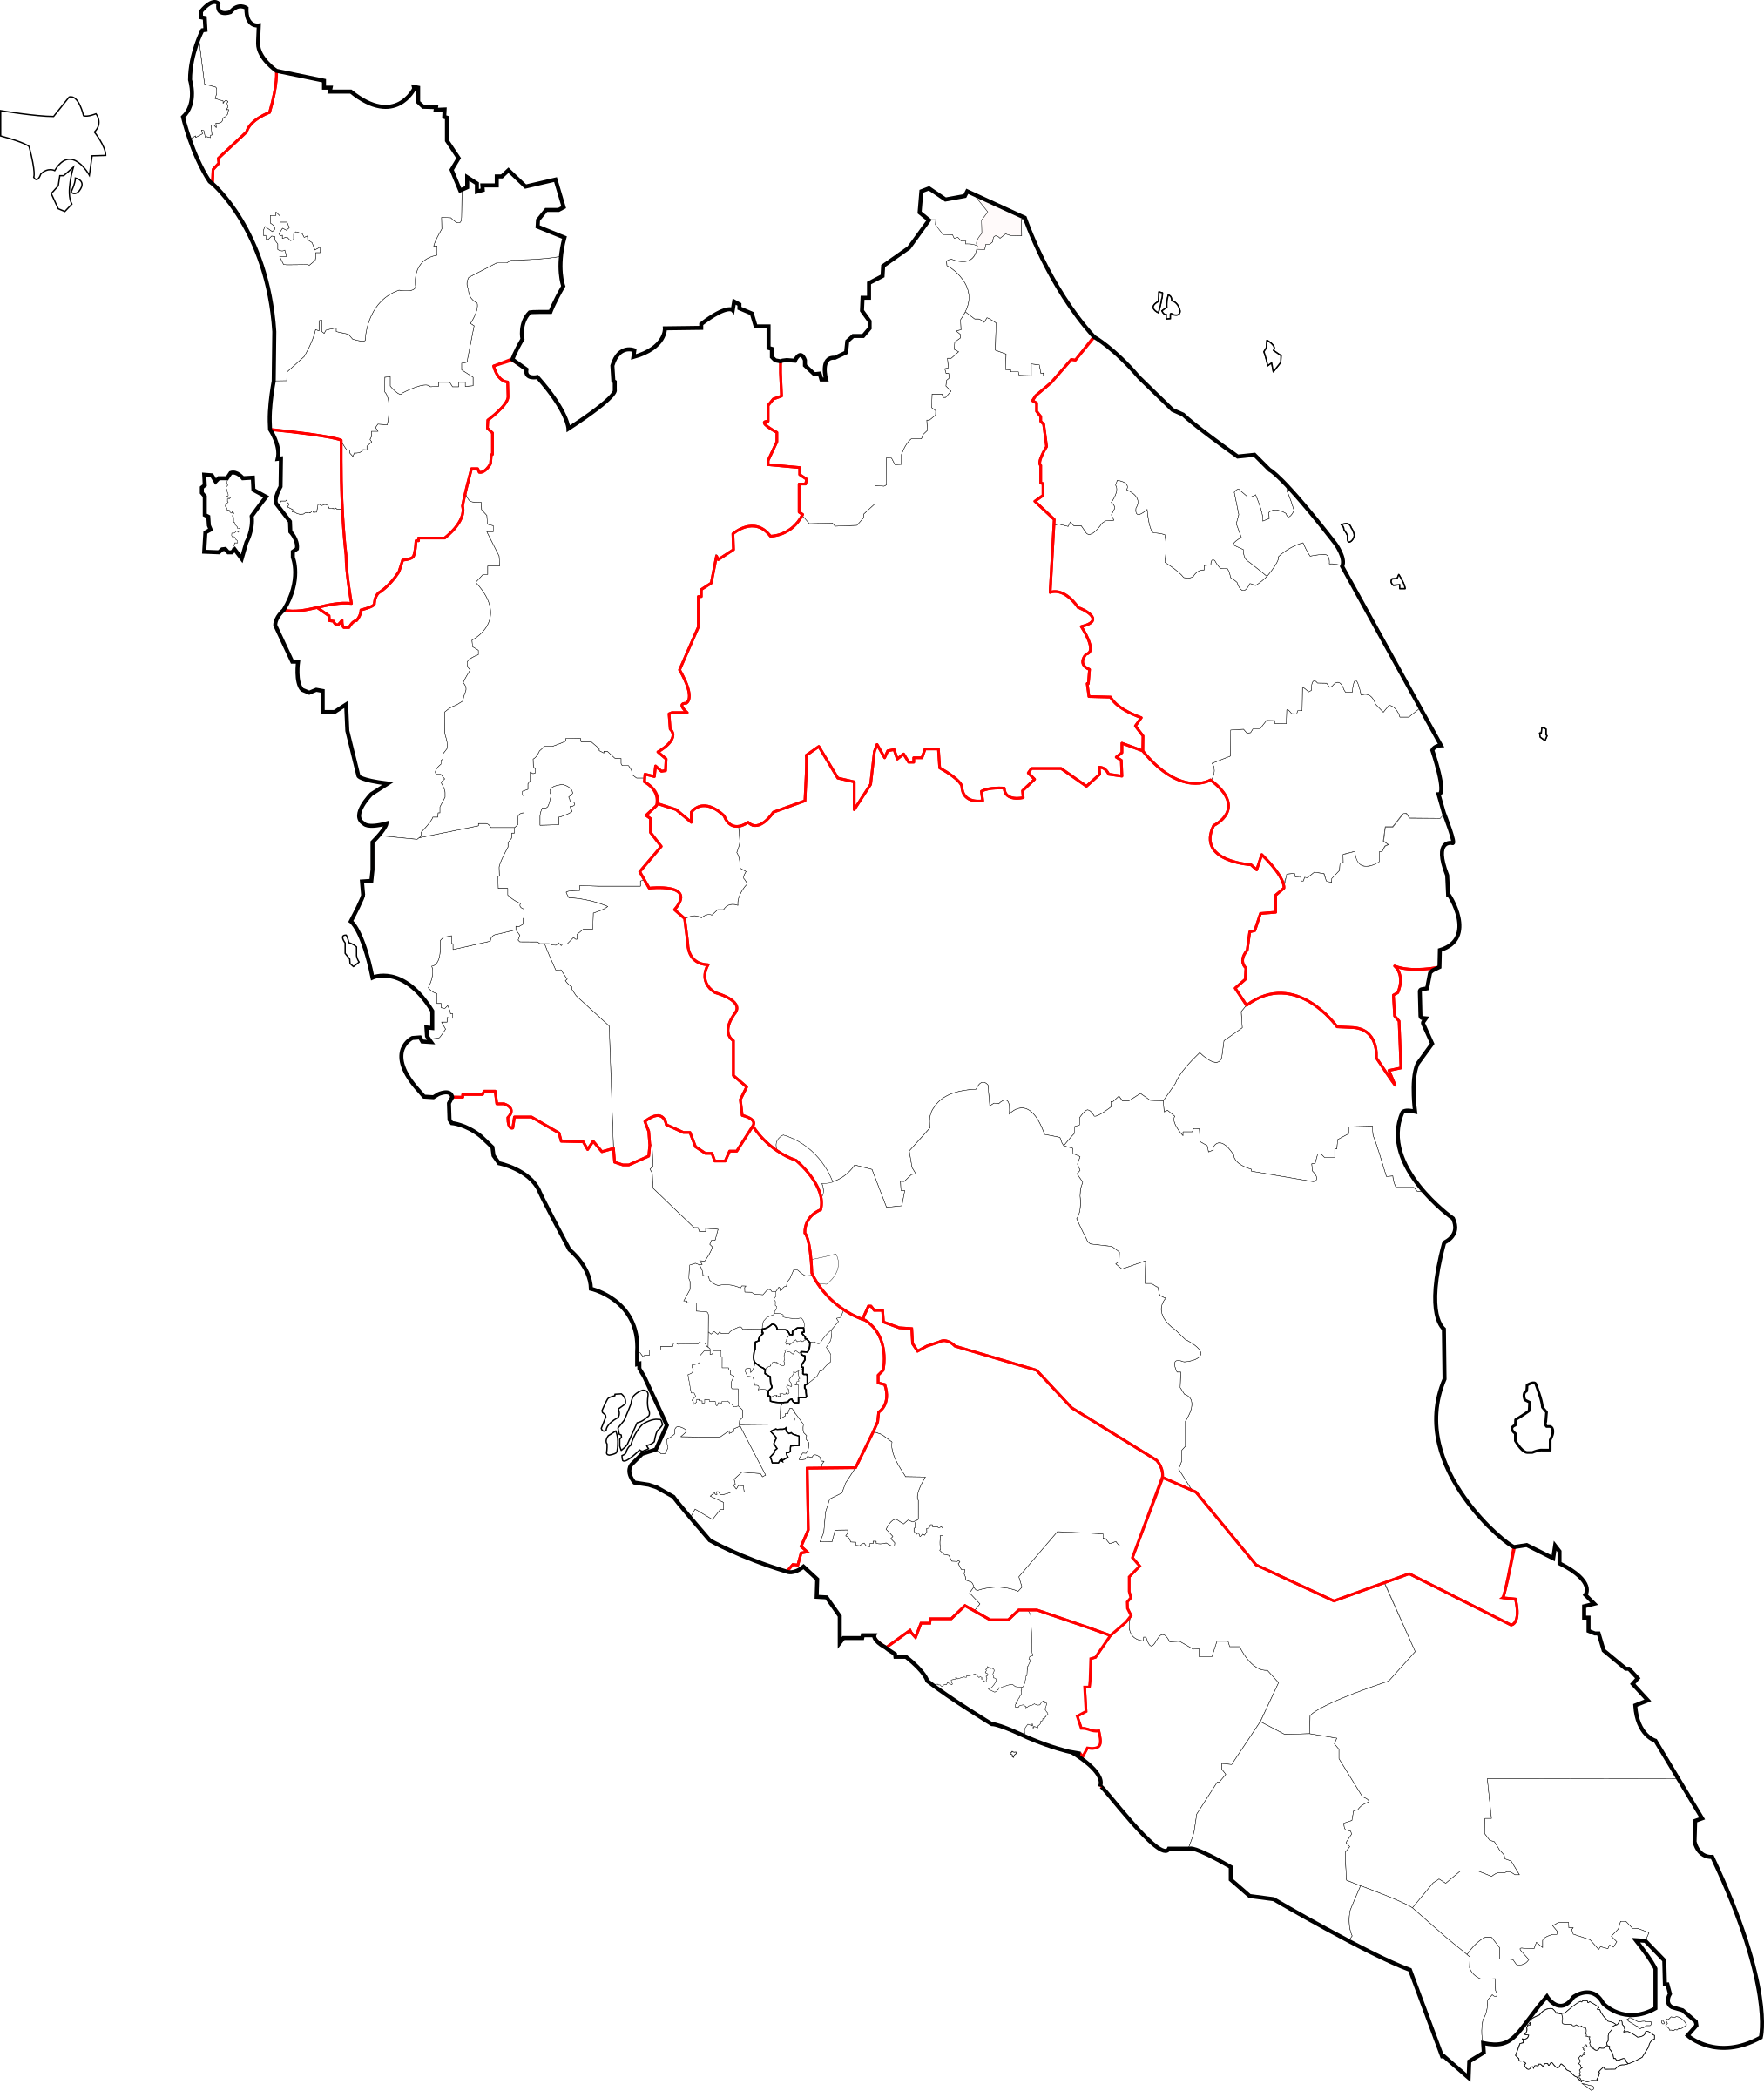 Blank map of Peninsular Malaysia (fixed and updated) by derkommander0916